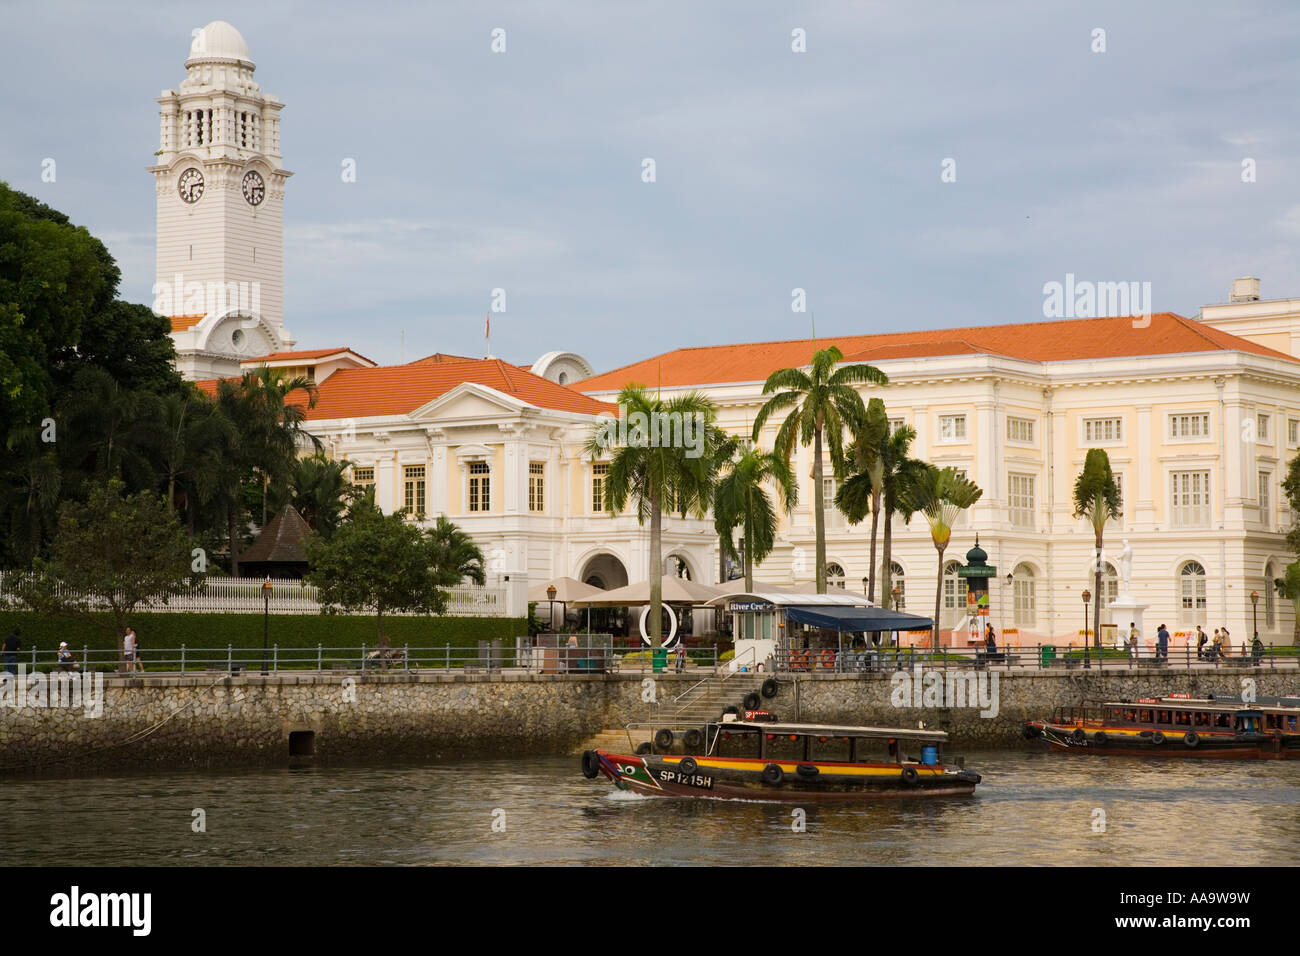 Asian Civilisations Museum in Empress Building at Empress Place on North Boat Quay Civic District, Singapore City - Stock Image